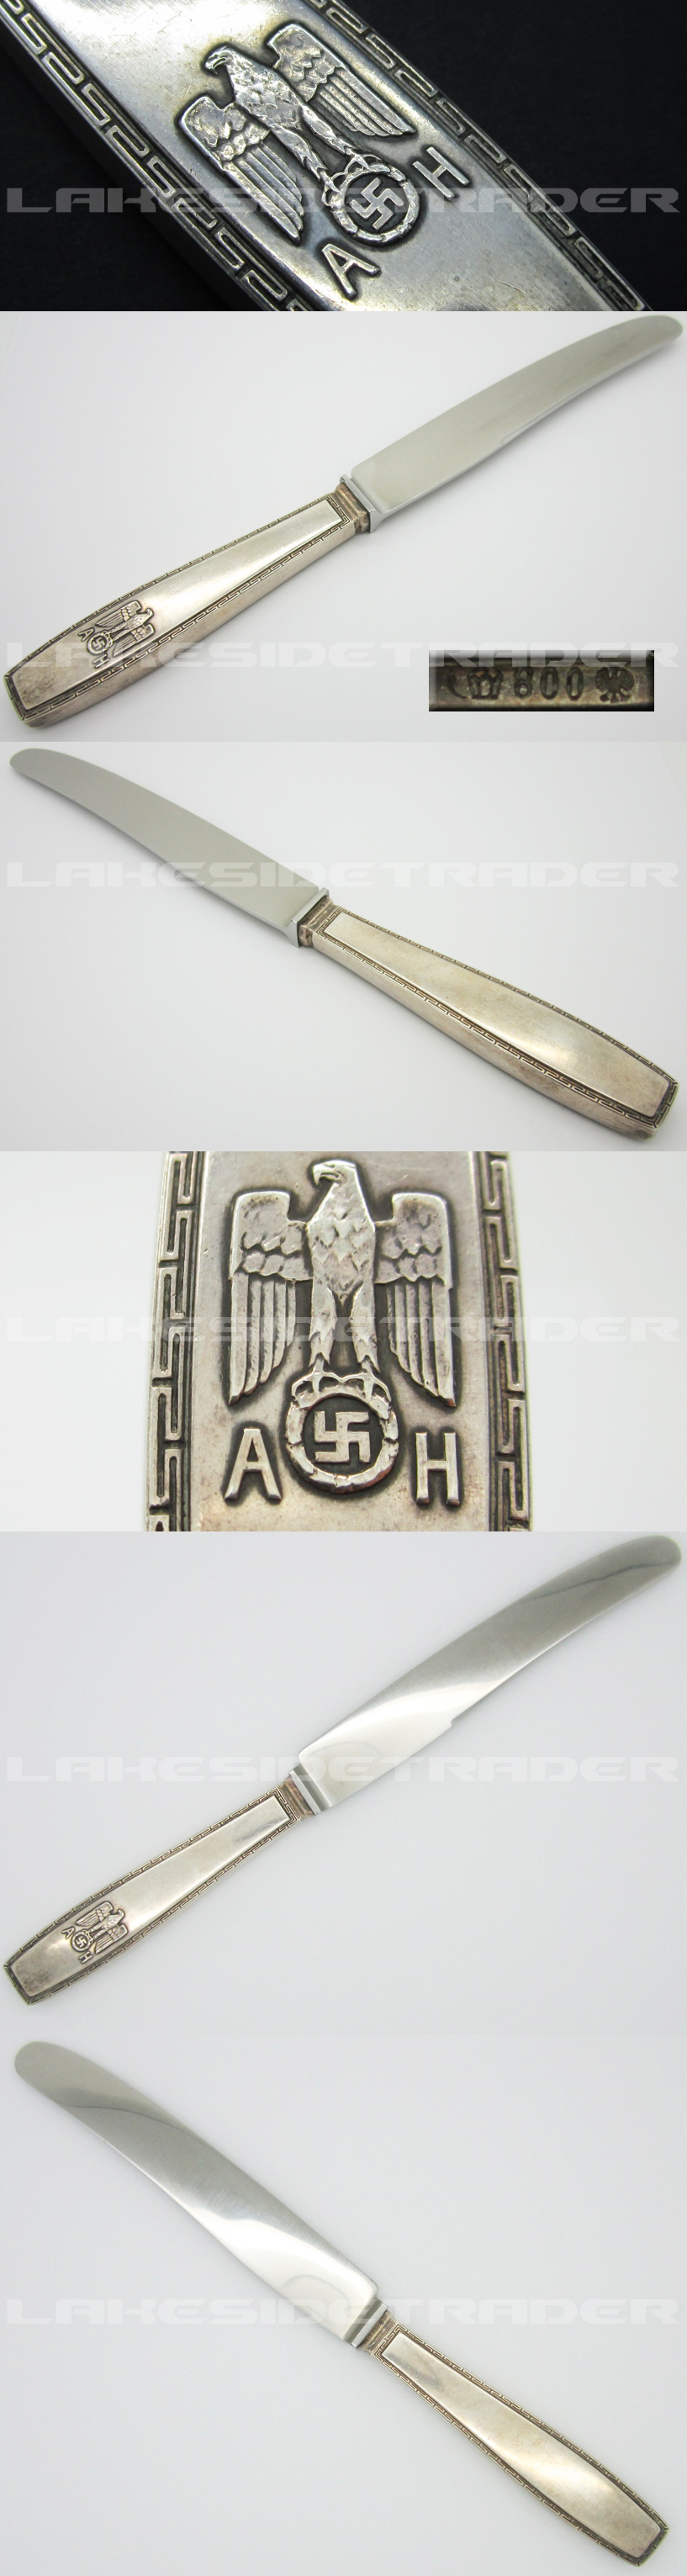 Adolf Hitler Formal Pattern Large Dinner Knife